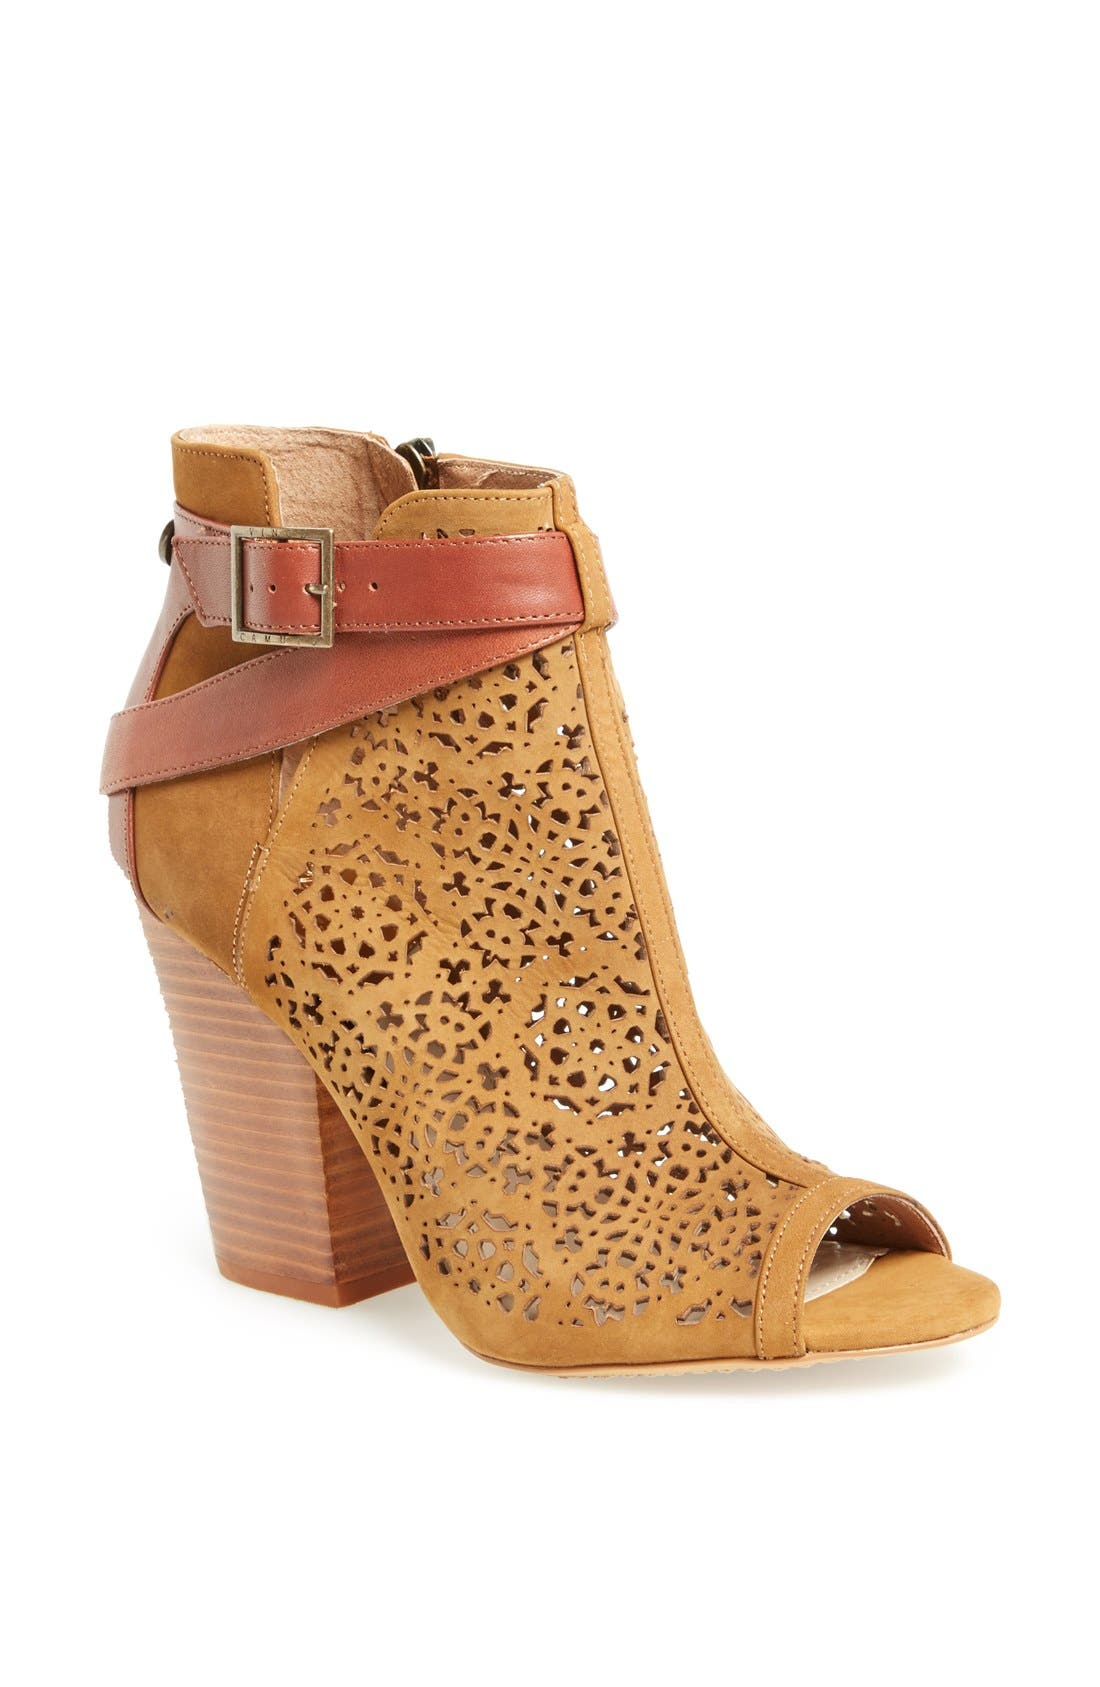 Alternate Image 1 Selected - Vince Camuto 'Maizy' Bootie (Nordstrom Exclusive)